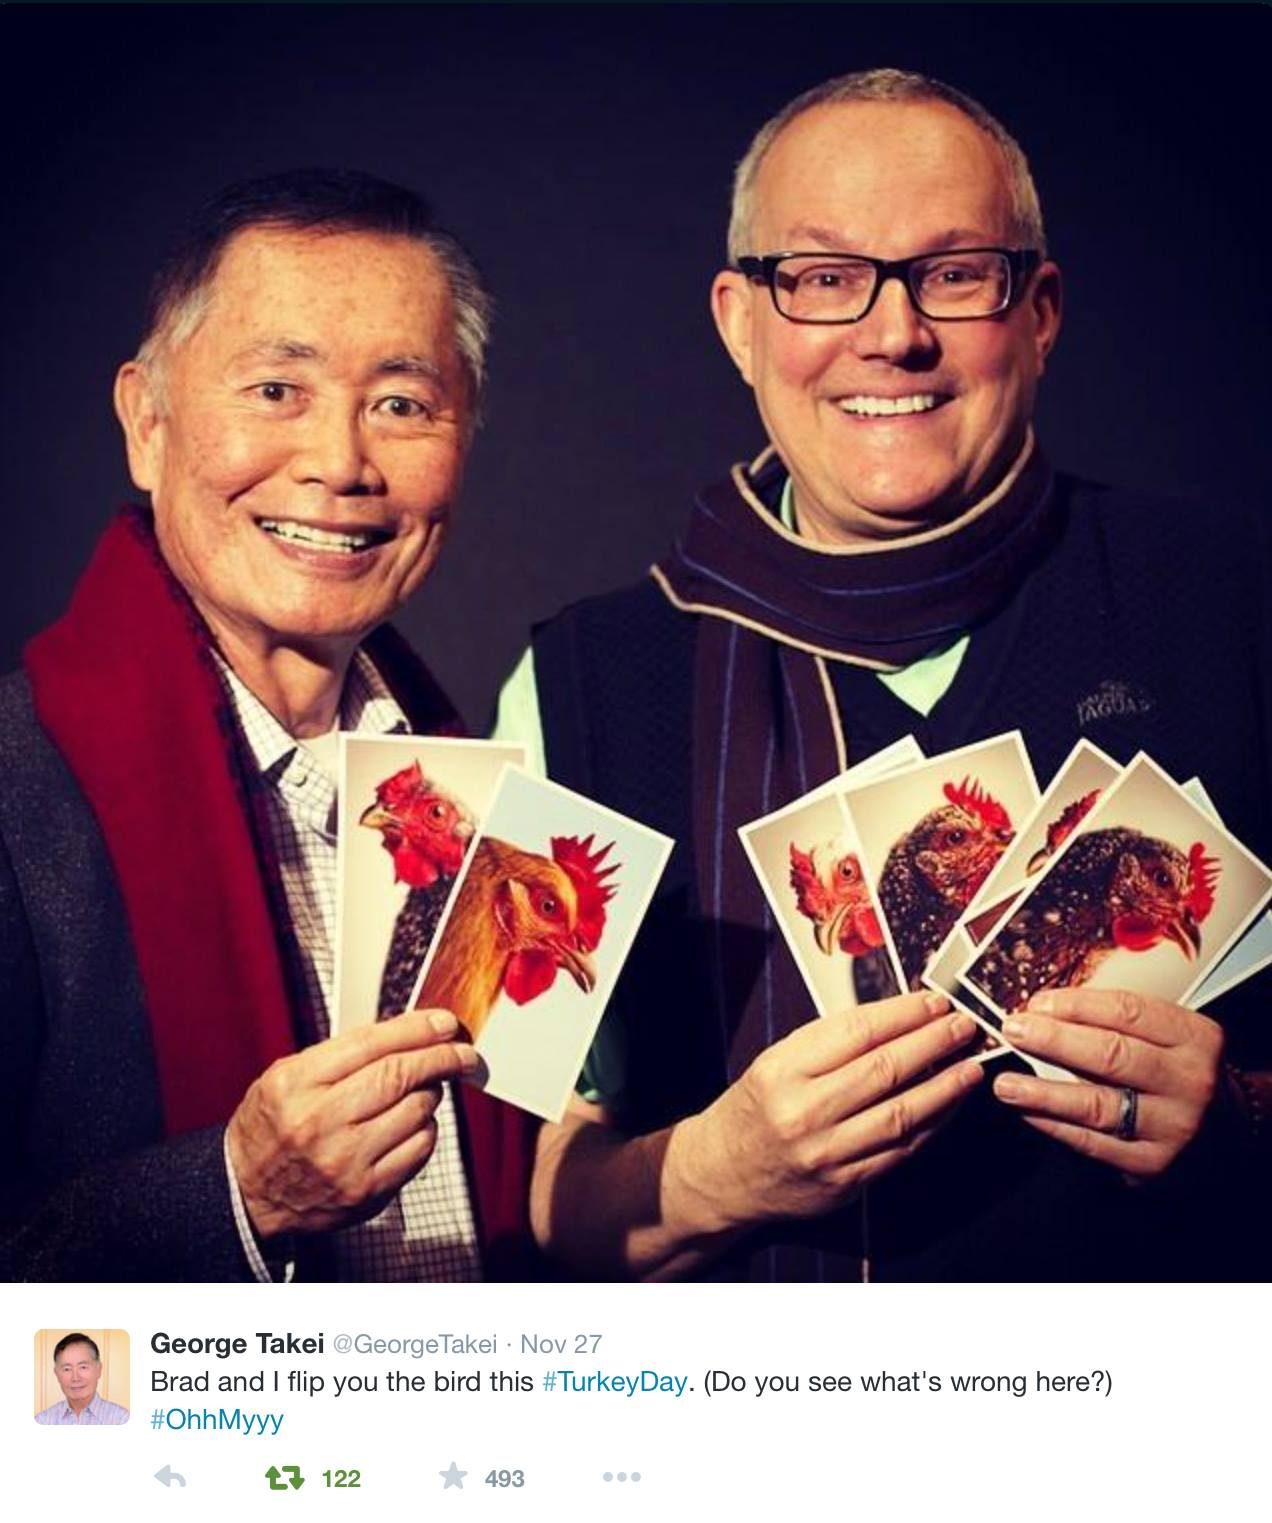 george brad takei s thanksgiving card ohmyyy aut walker clay